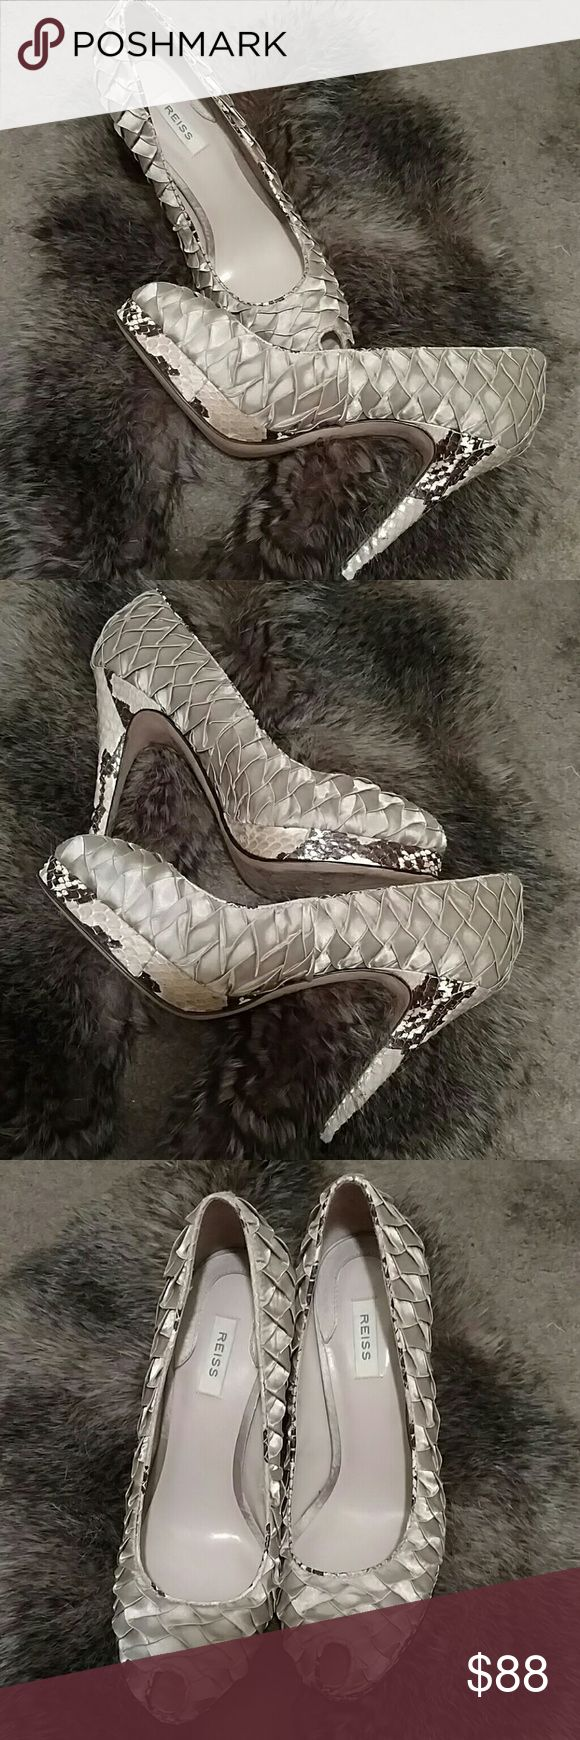 REISS high heels shoes New quilted REISS shoes, 4.5 heels. The sides and